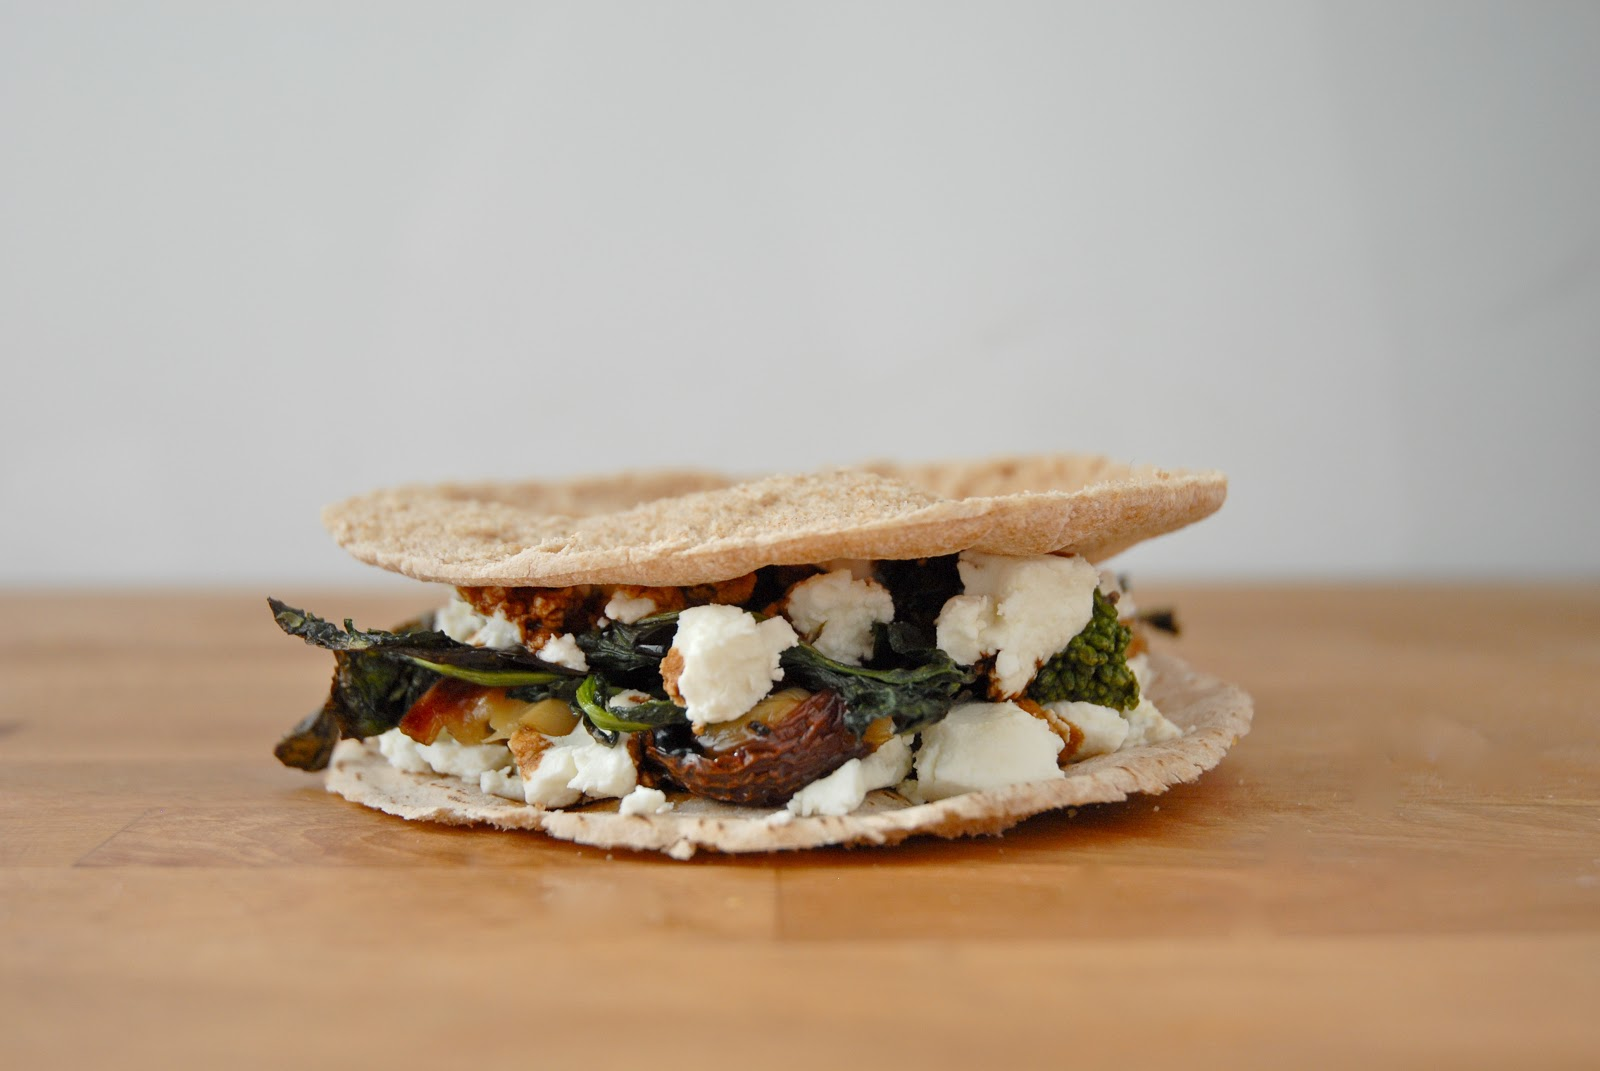 ... Roasted Garlic and Broccoli Rabe Grilled Cheese - Grilled Cheese